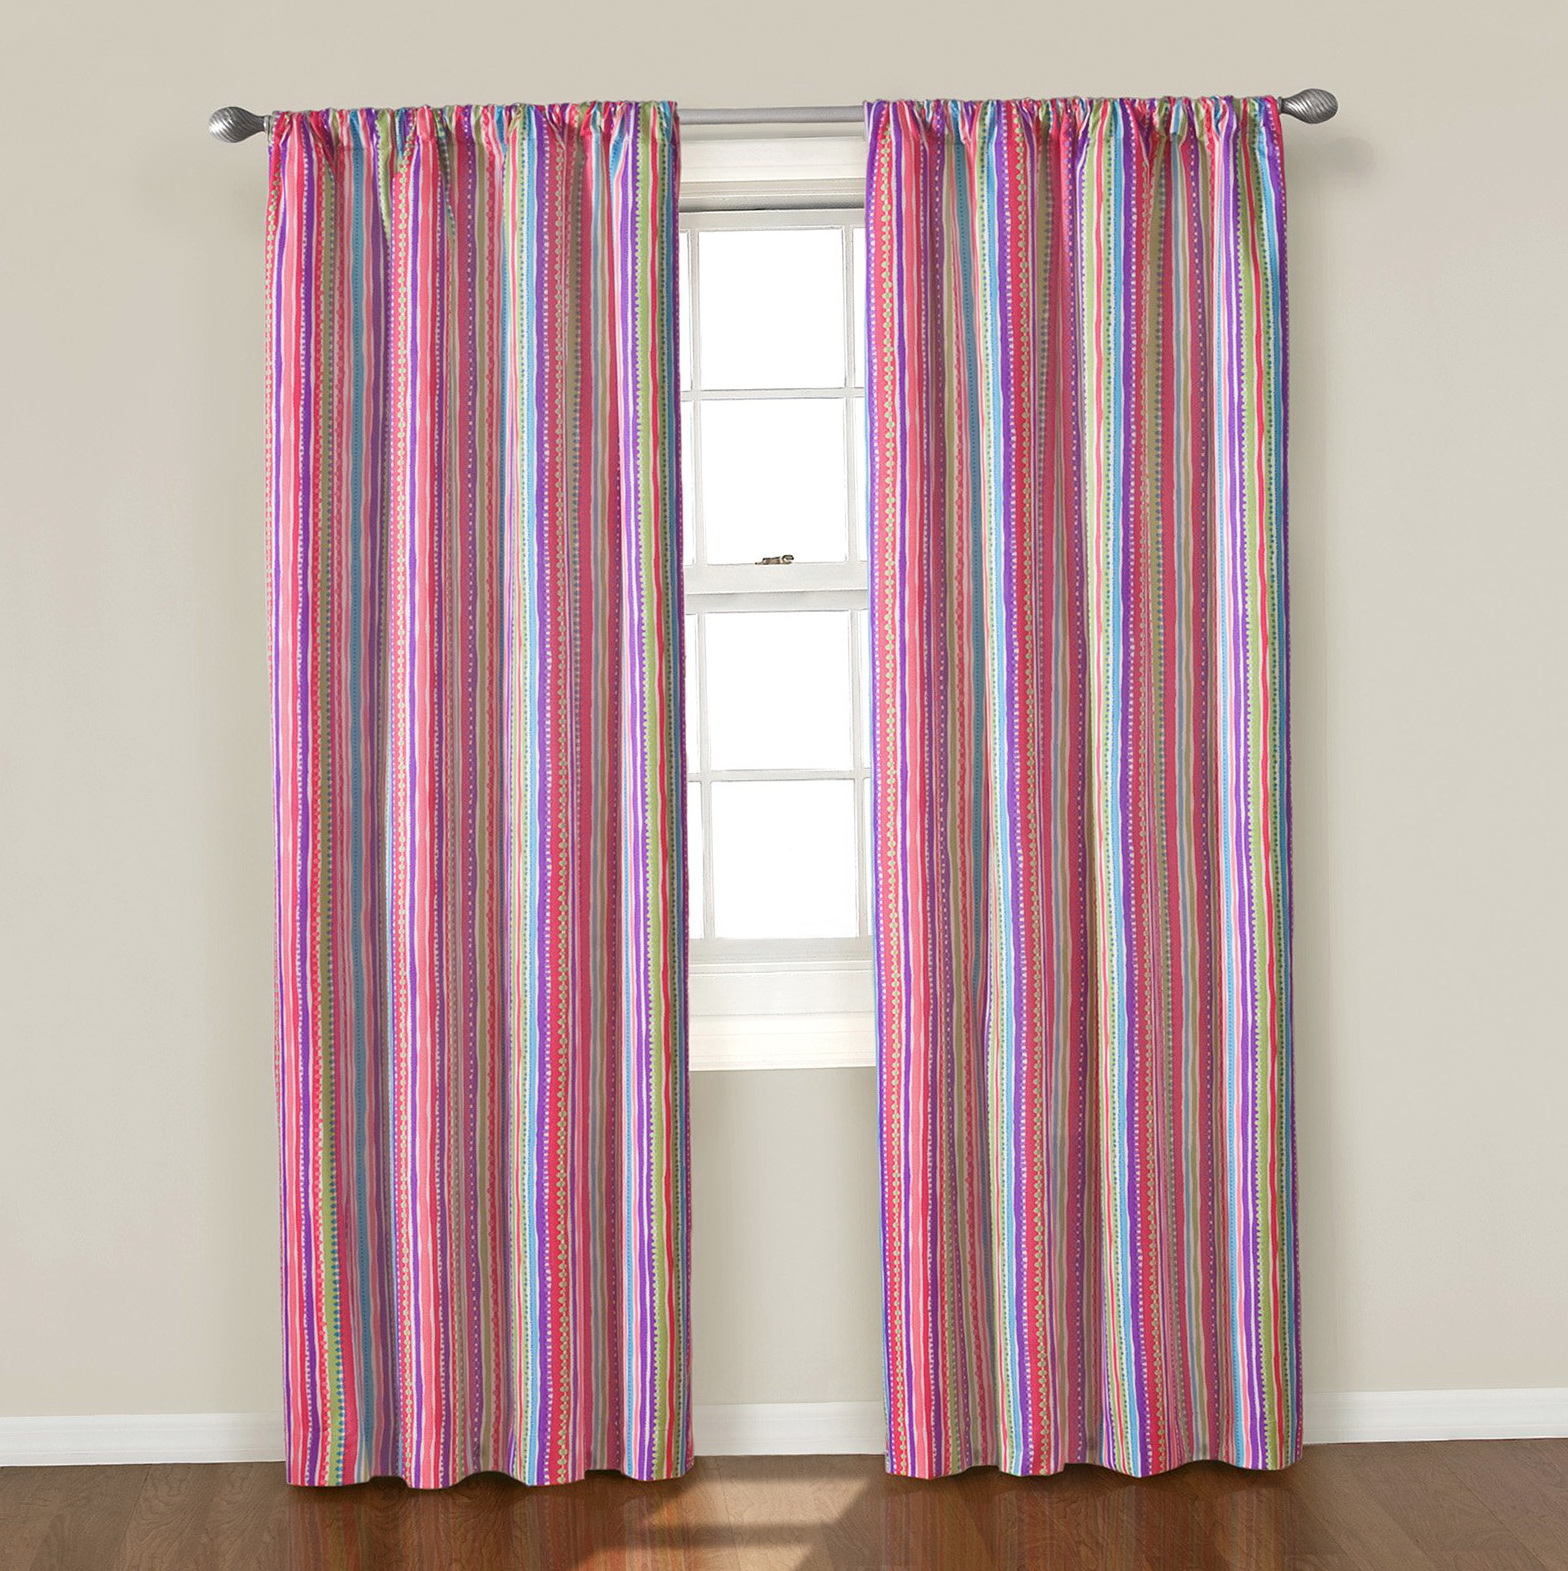 Energy Efficient Curtains Bed Bath And Beyond Home